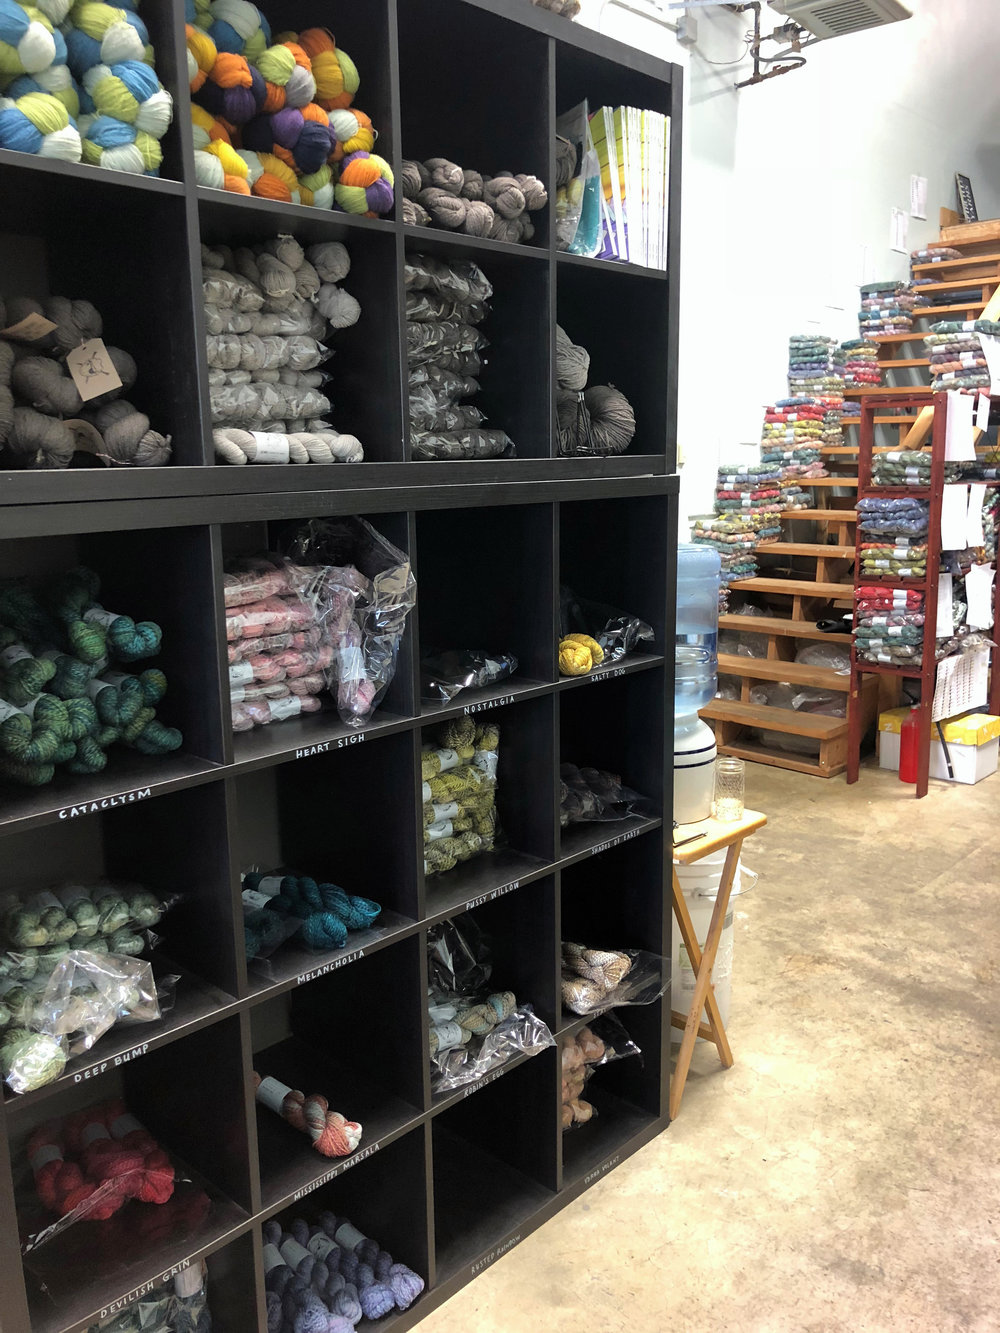 Yarn, yarn everywhere. At Spincycle Yarns.